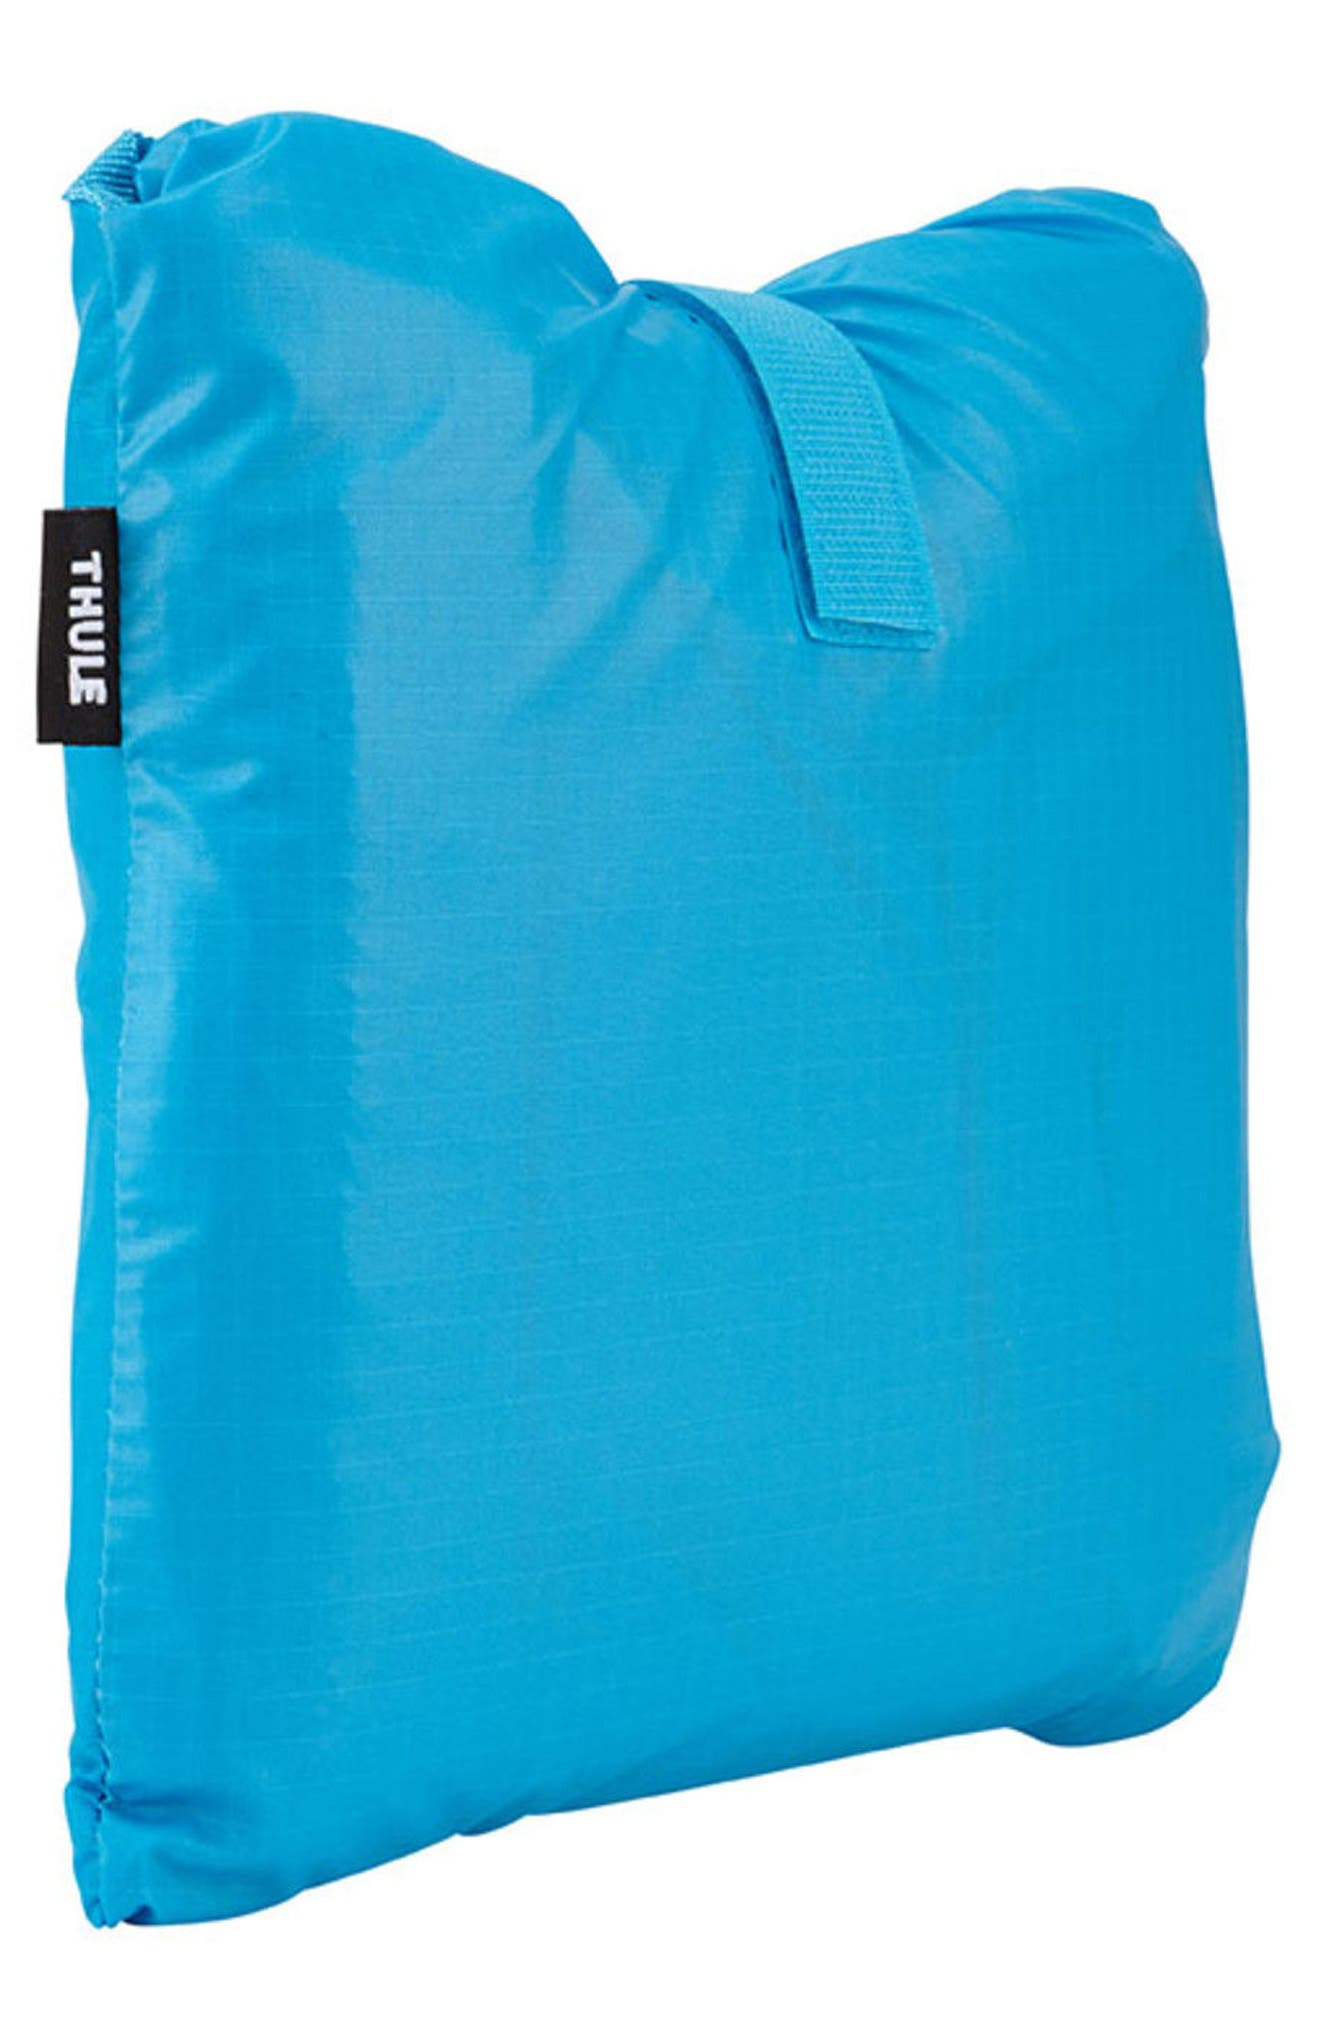 Infant Thule Sapling Child Carrier Rain Cover Size One Size  Blue